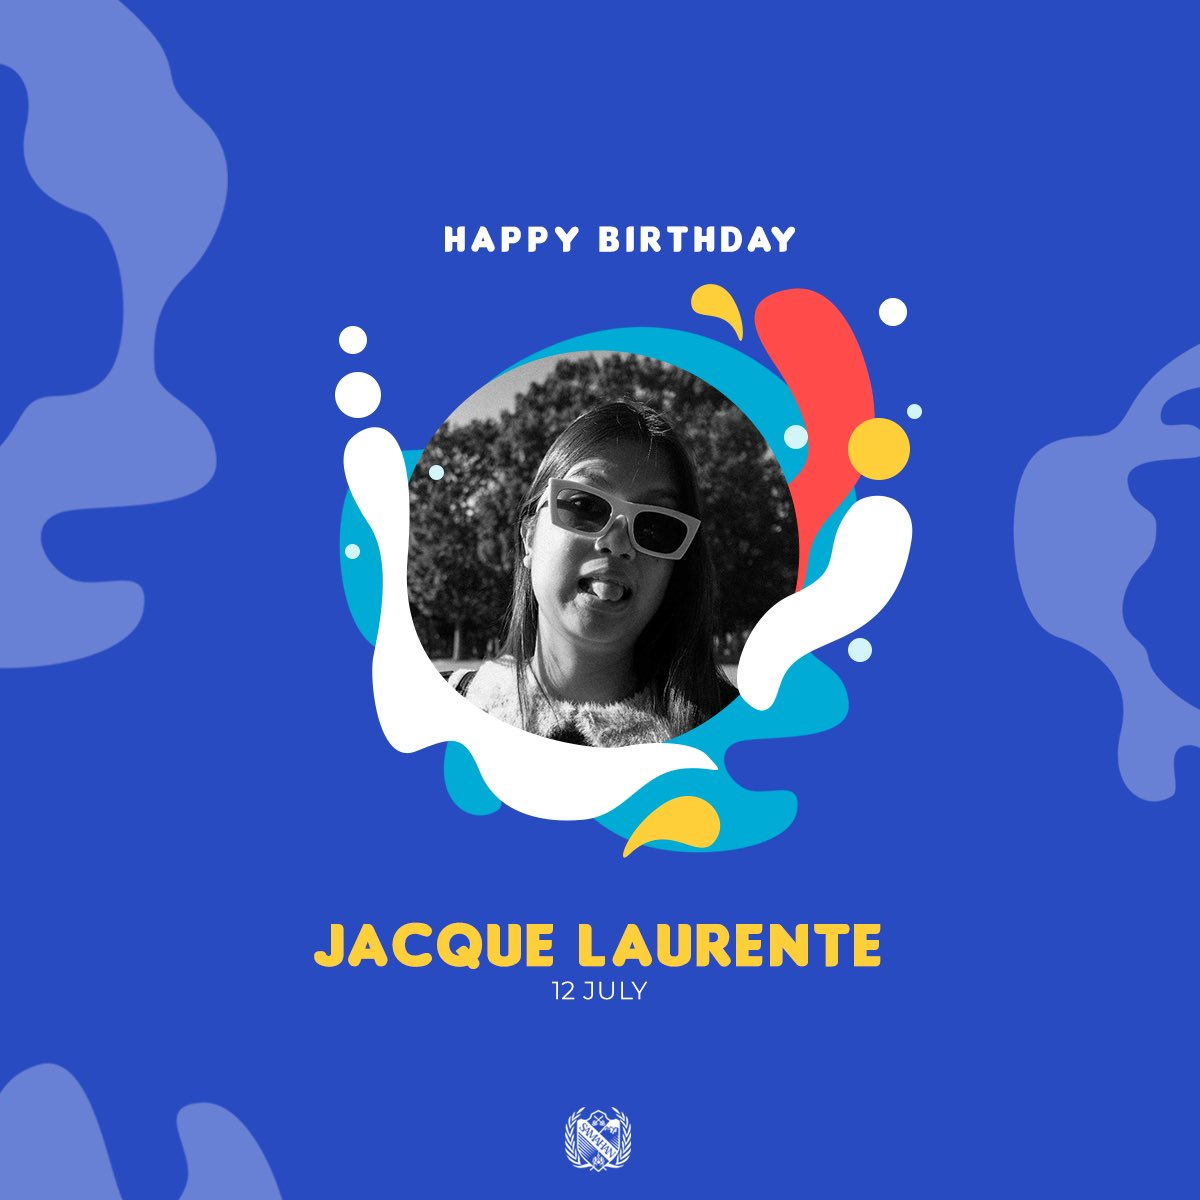 Happy Birthday to our Ateneo SAMAHAN Productions Director, Jacque Laurente! We wish you only the best! 🎉